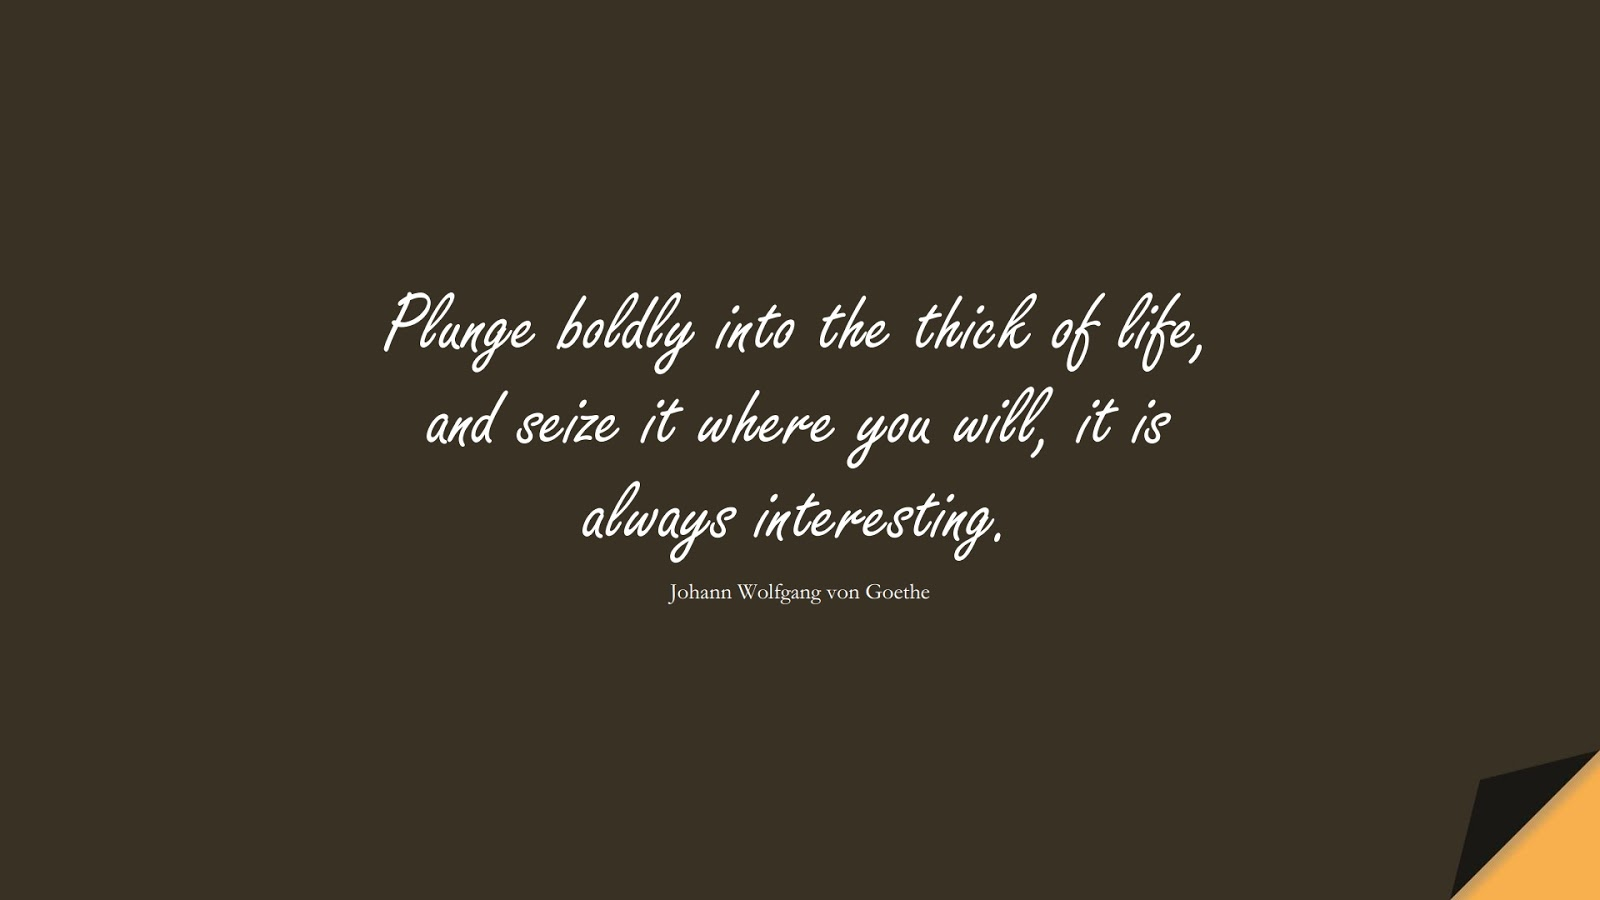 Plunge boldly into the thick of life, and seize it where you will, it is always interesting. (Johann Wolfgang von Goethe);  #InspirationalQuotes